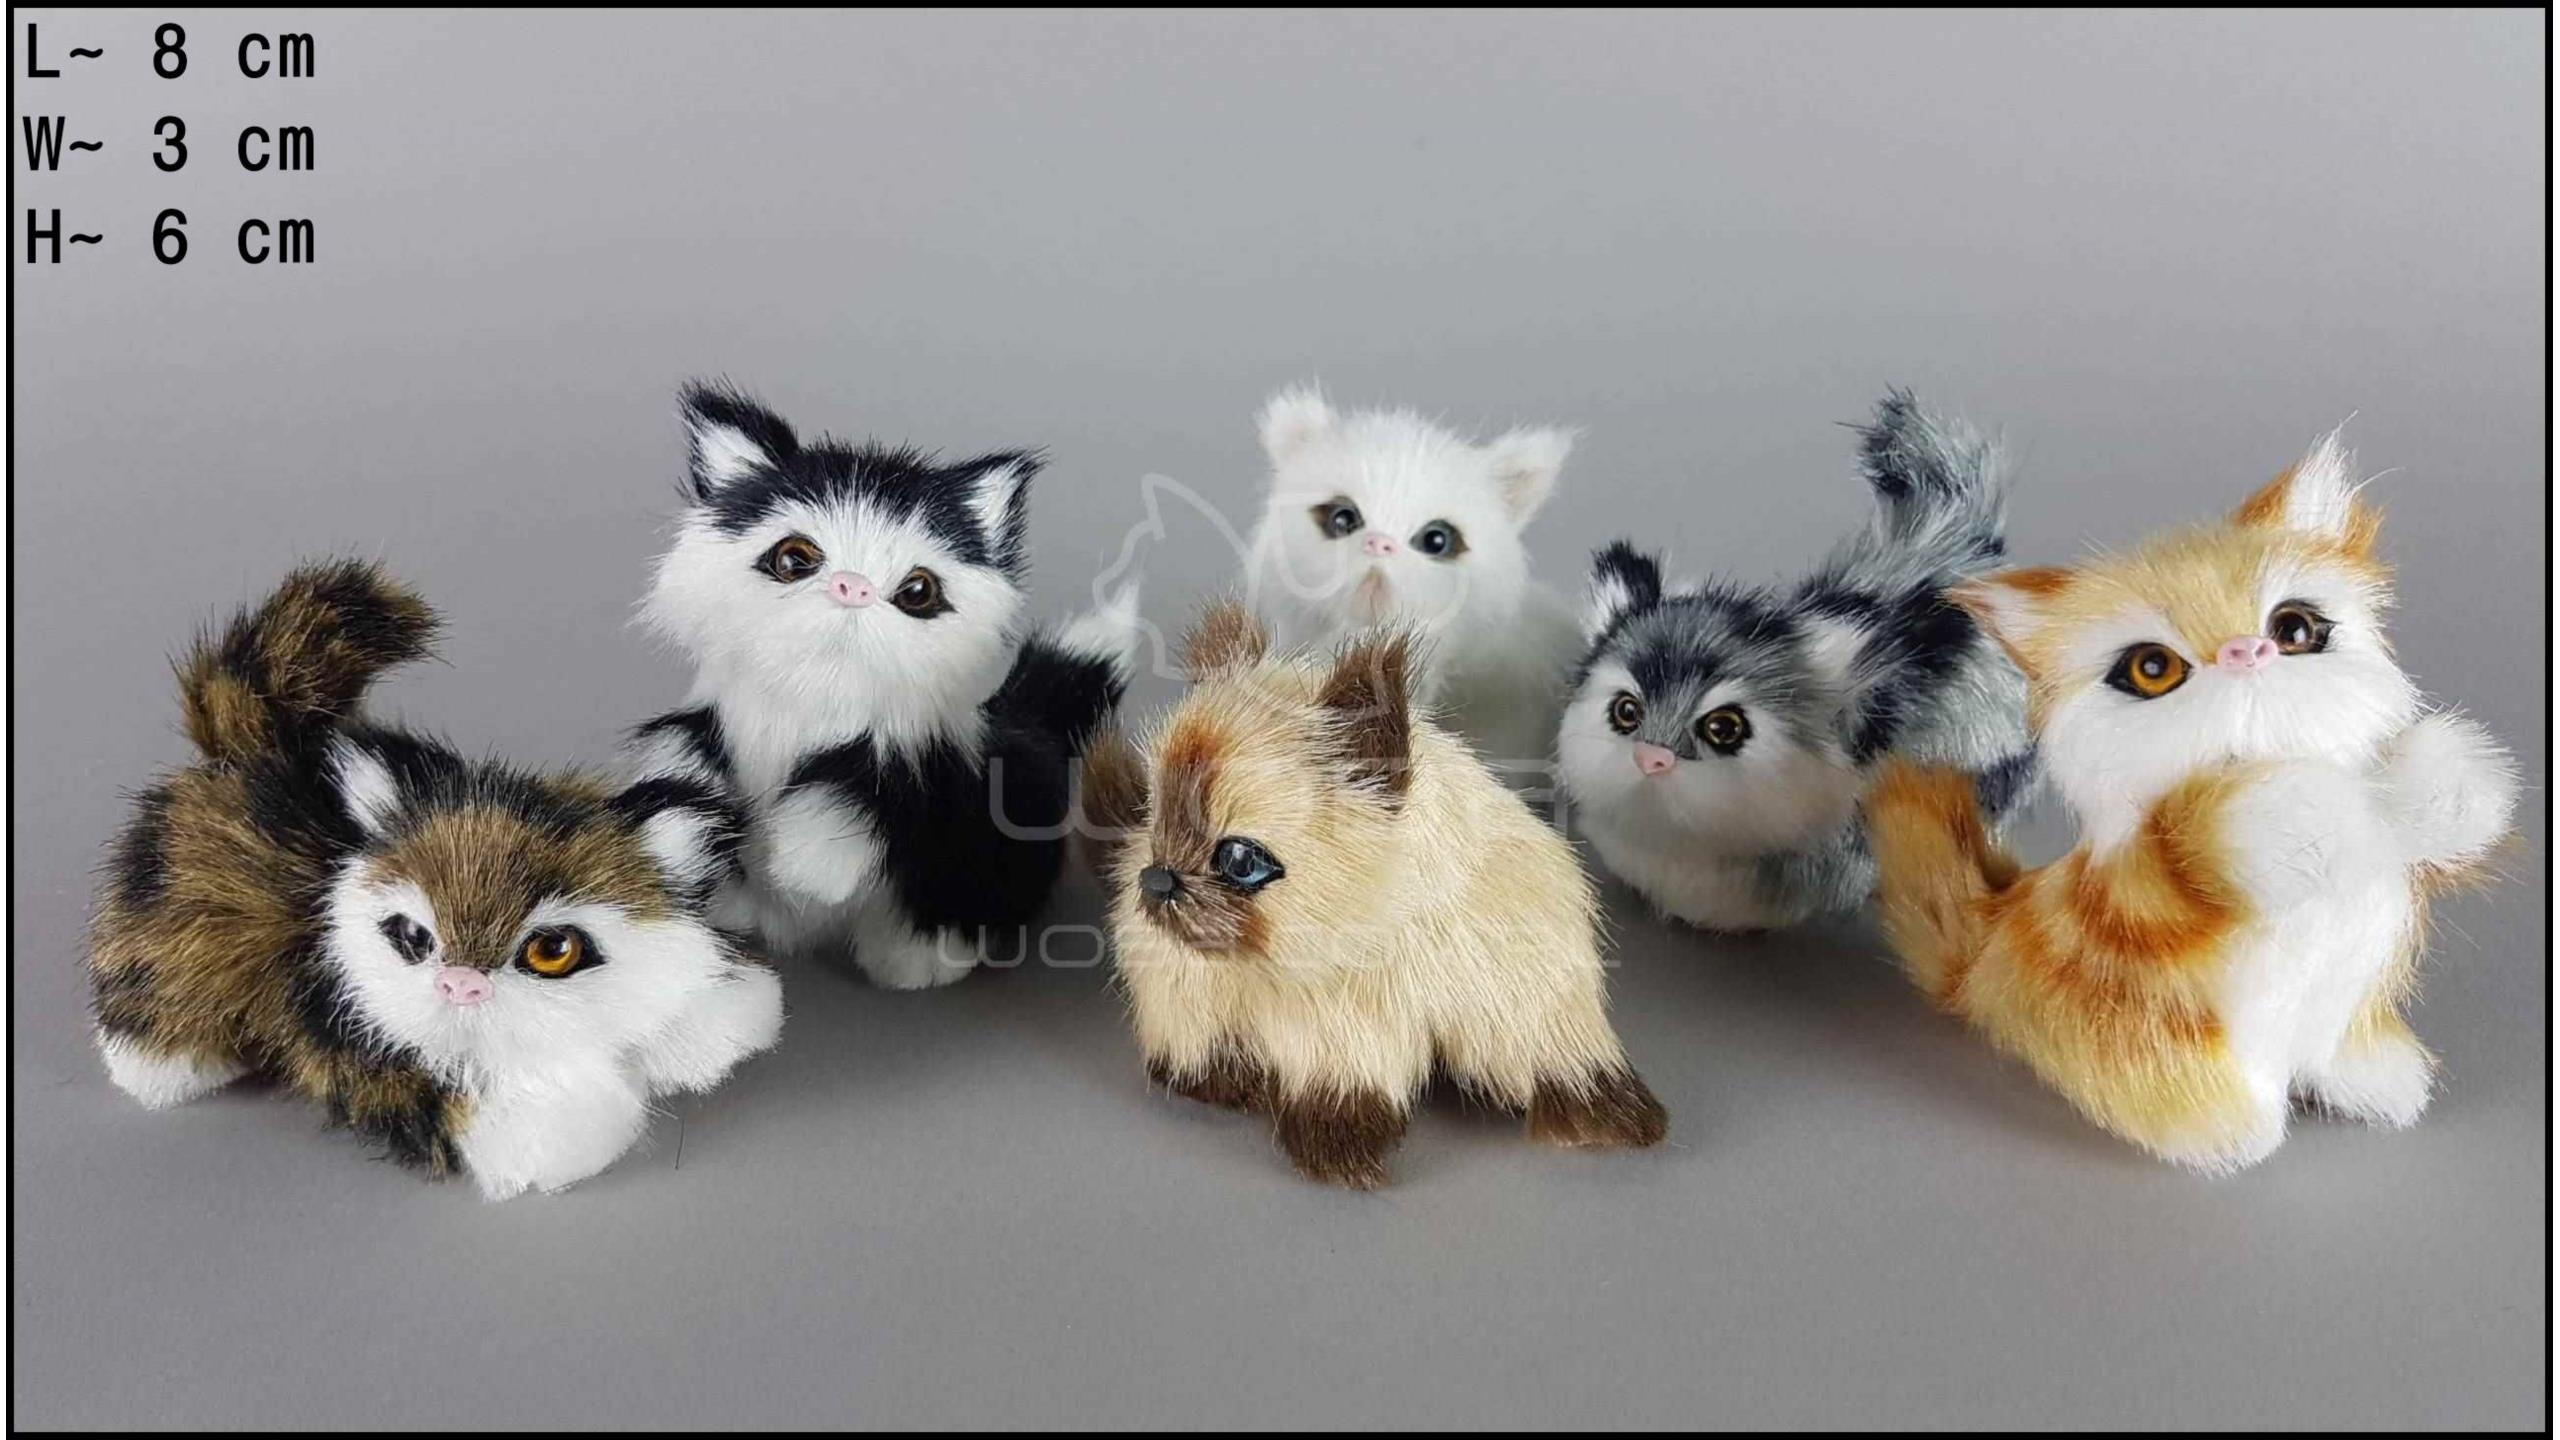 Little kittens (6 pcs in a box)